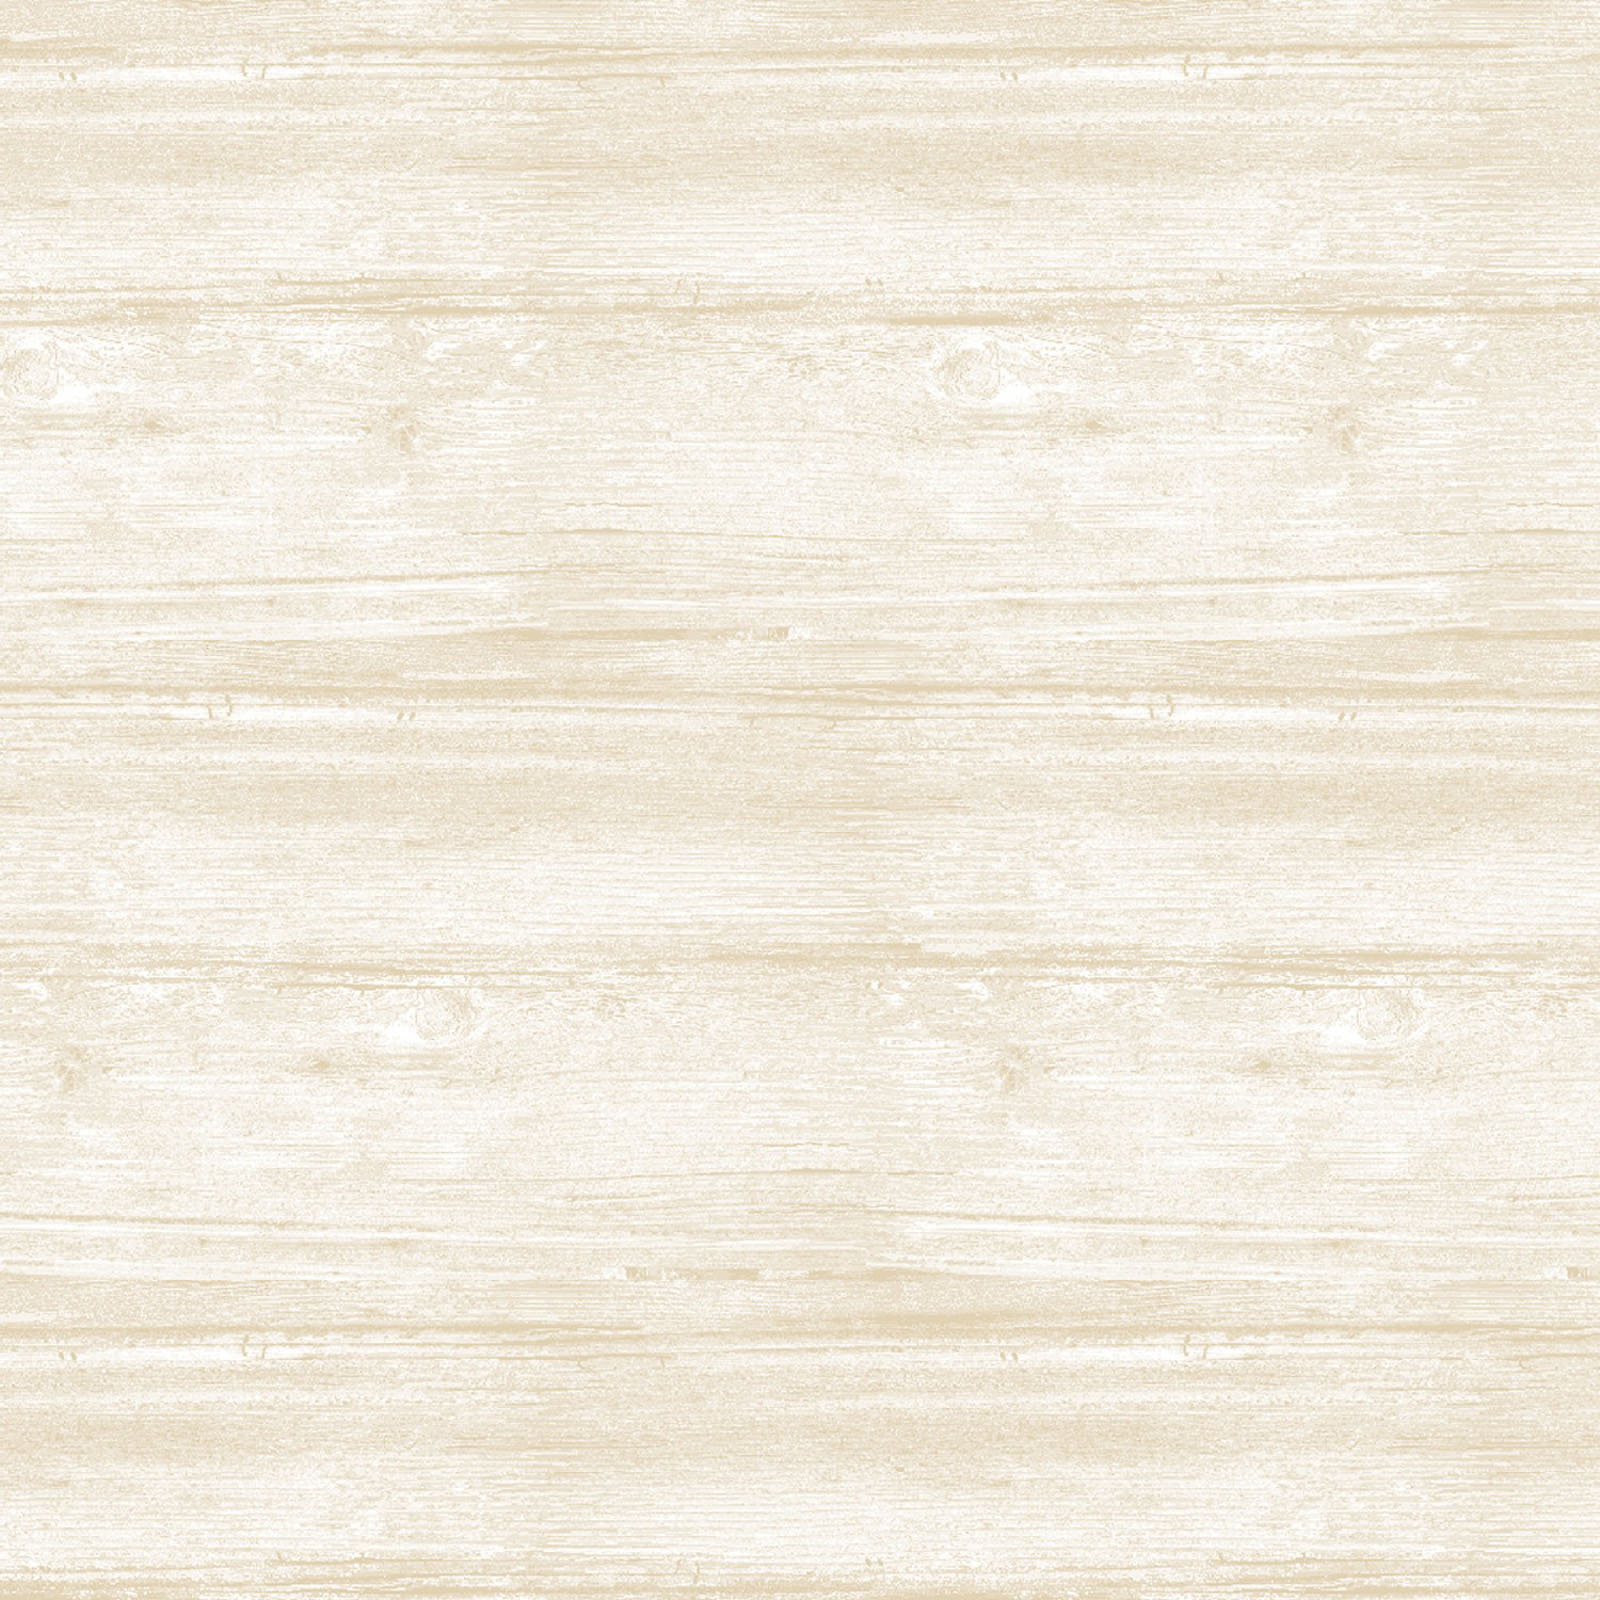 Washed Wood Basic - white wash